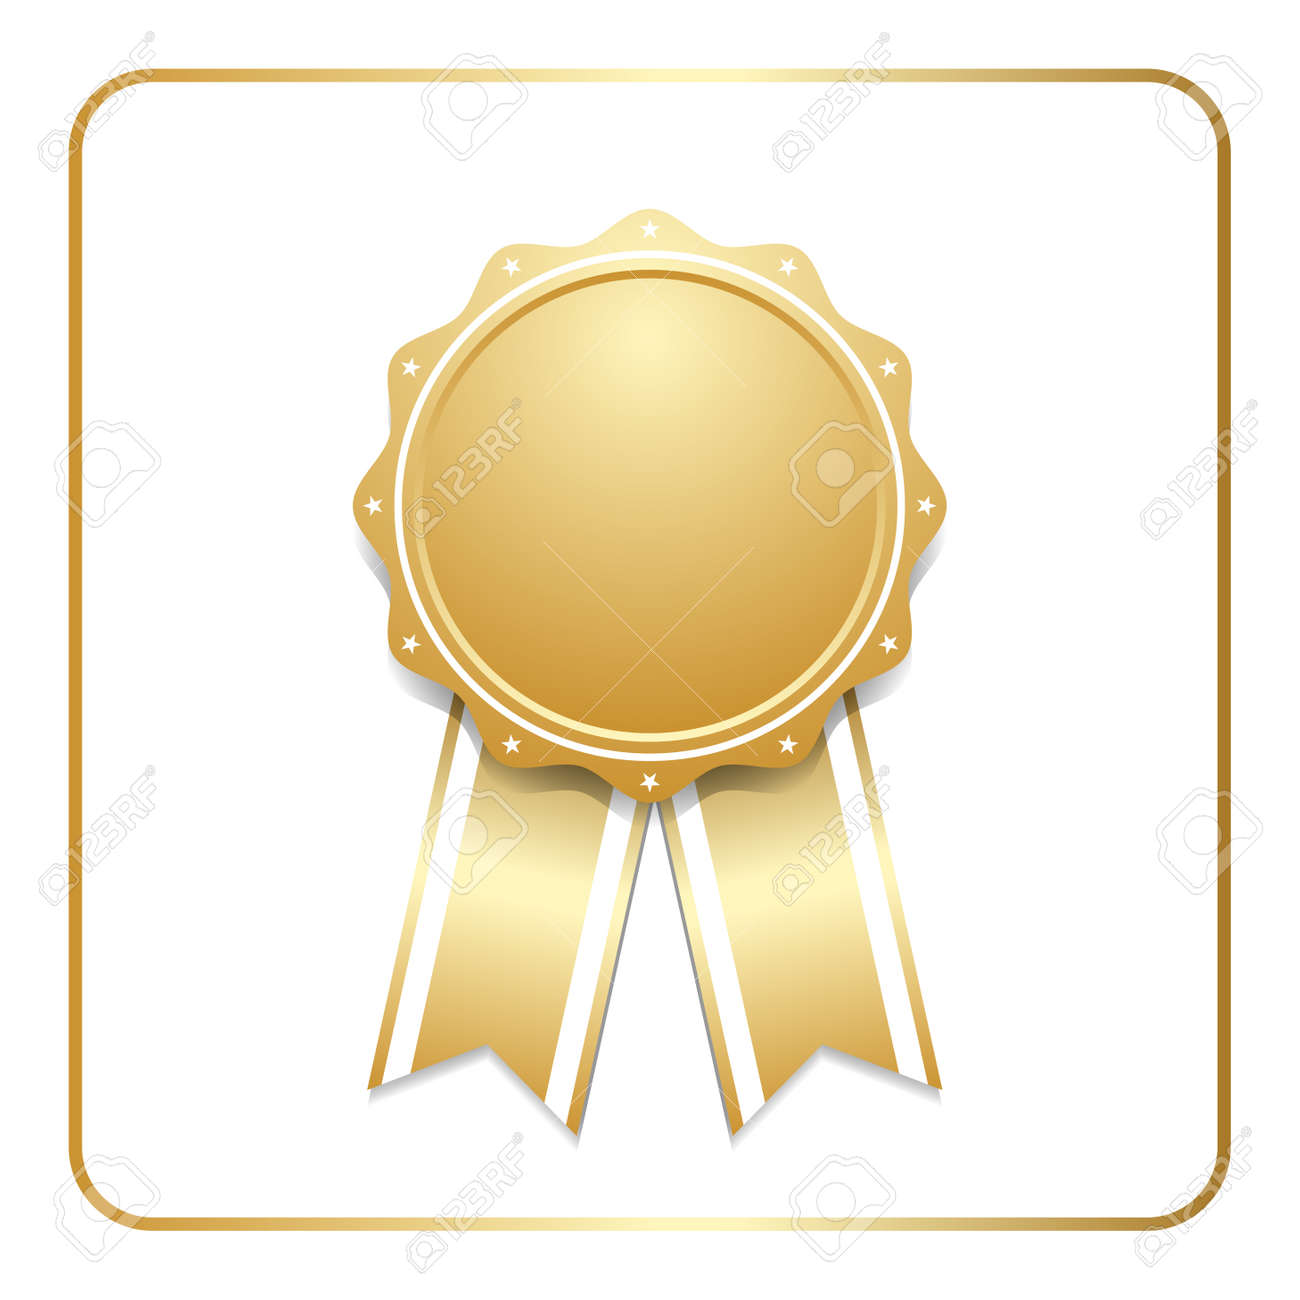 award ribbon gold icon blank medal with stars isolated on white